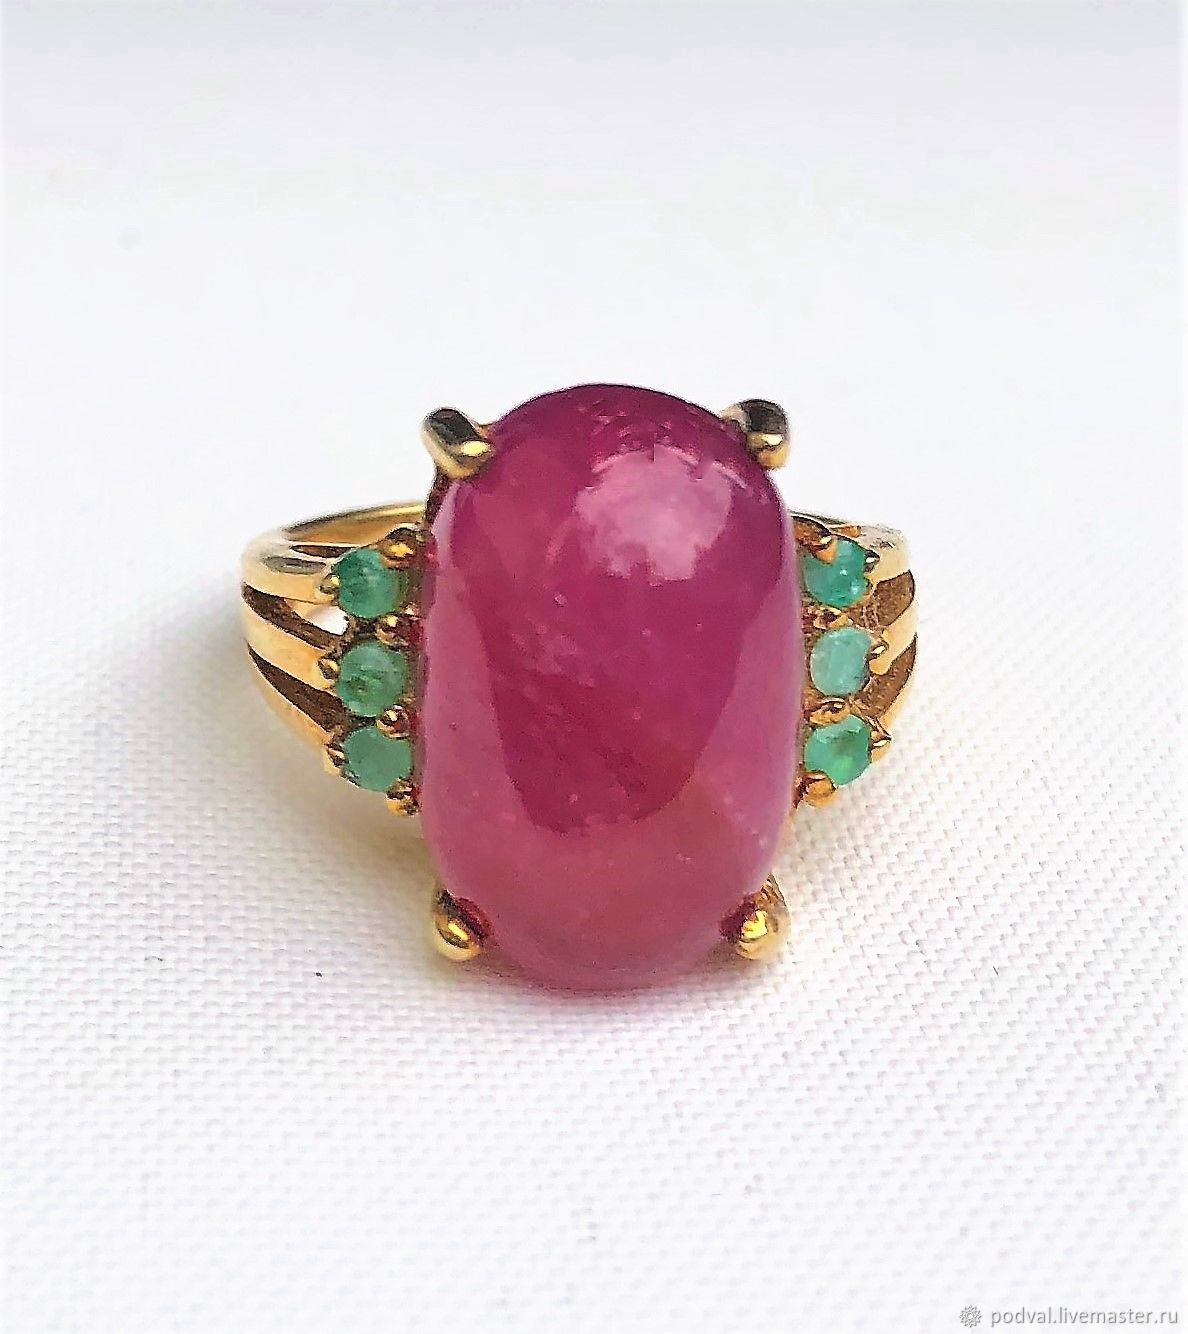 Ring with a large natural ruby cabochon 'Luxor' (p 17), Rings, Korolev,  Фото №1